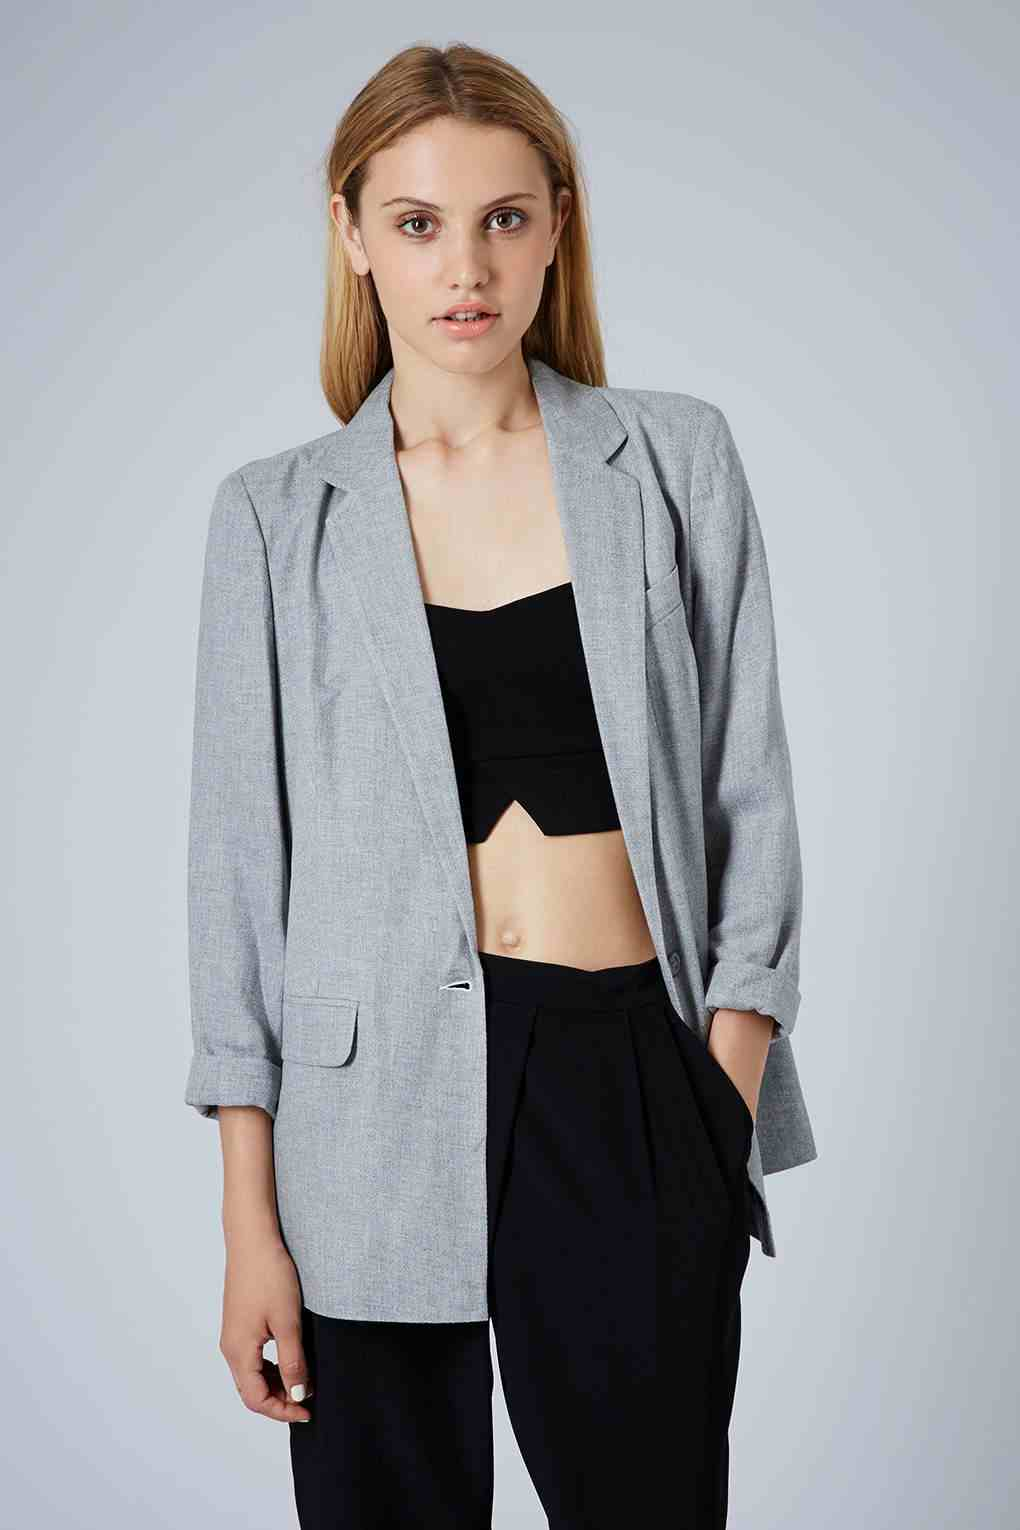 Topshop - Blazer long (76 €)